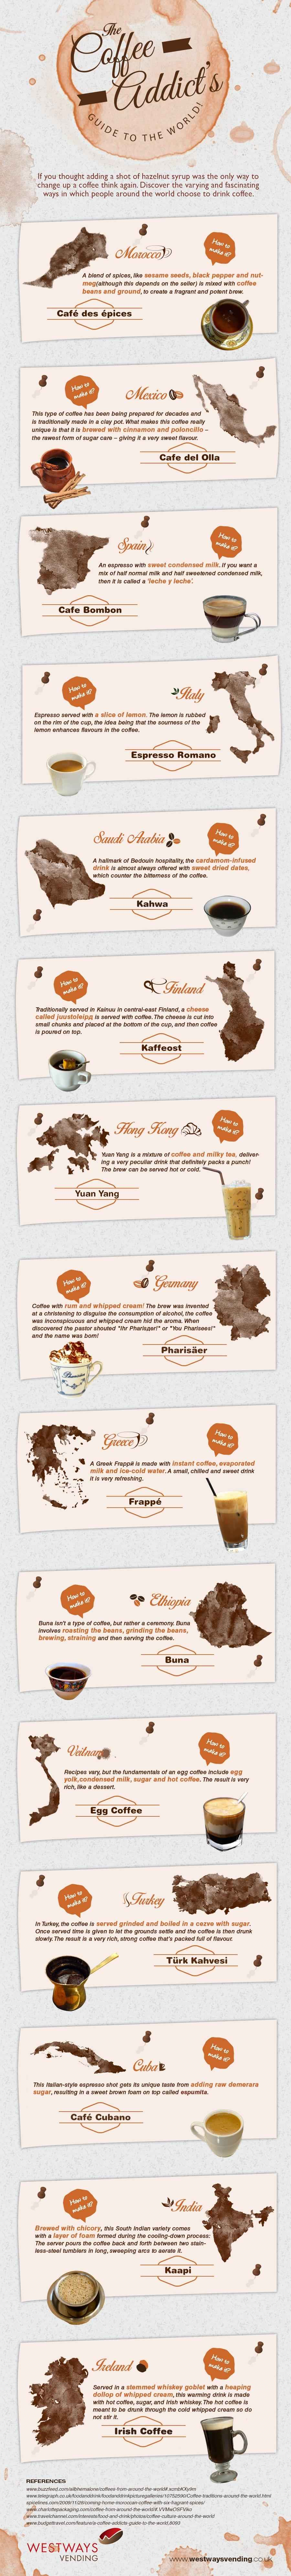 coffees of the world infographic